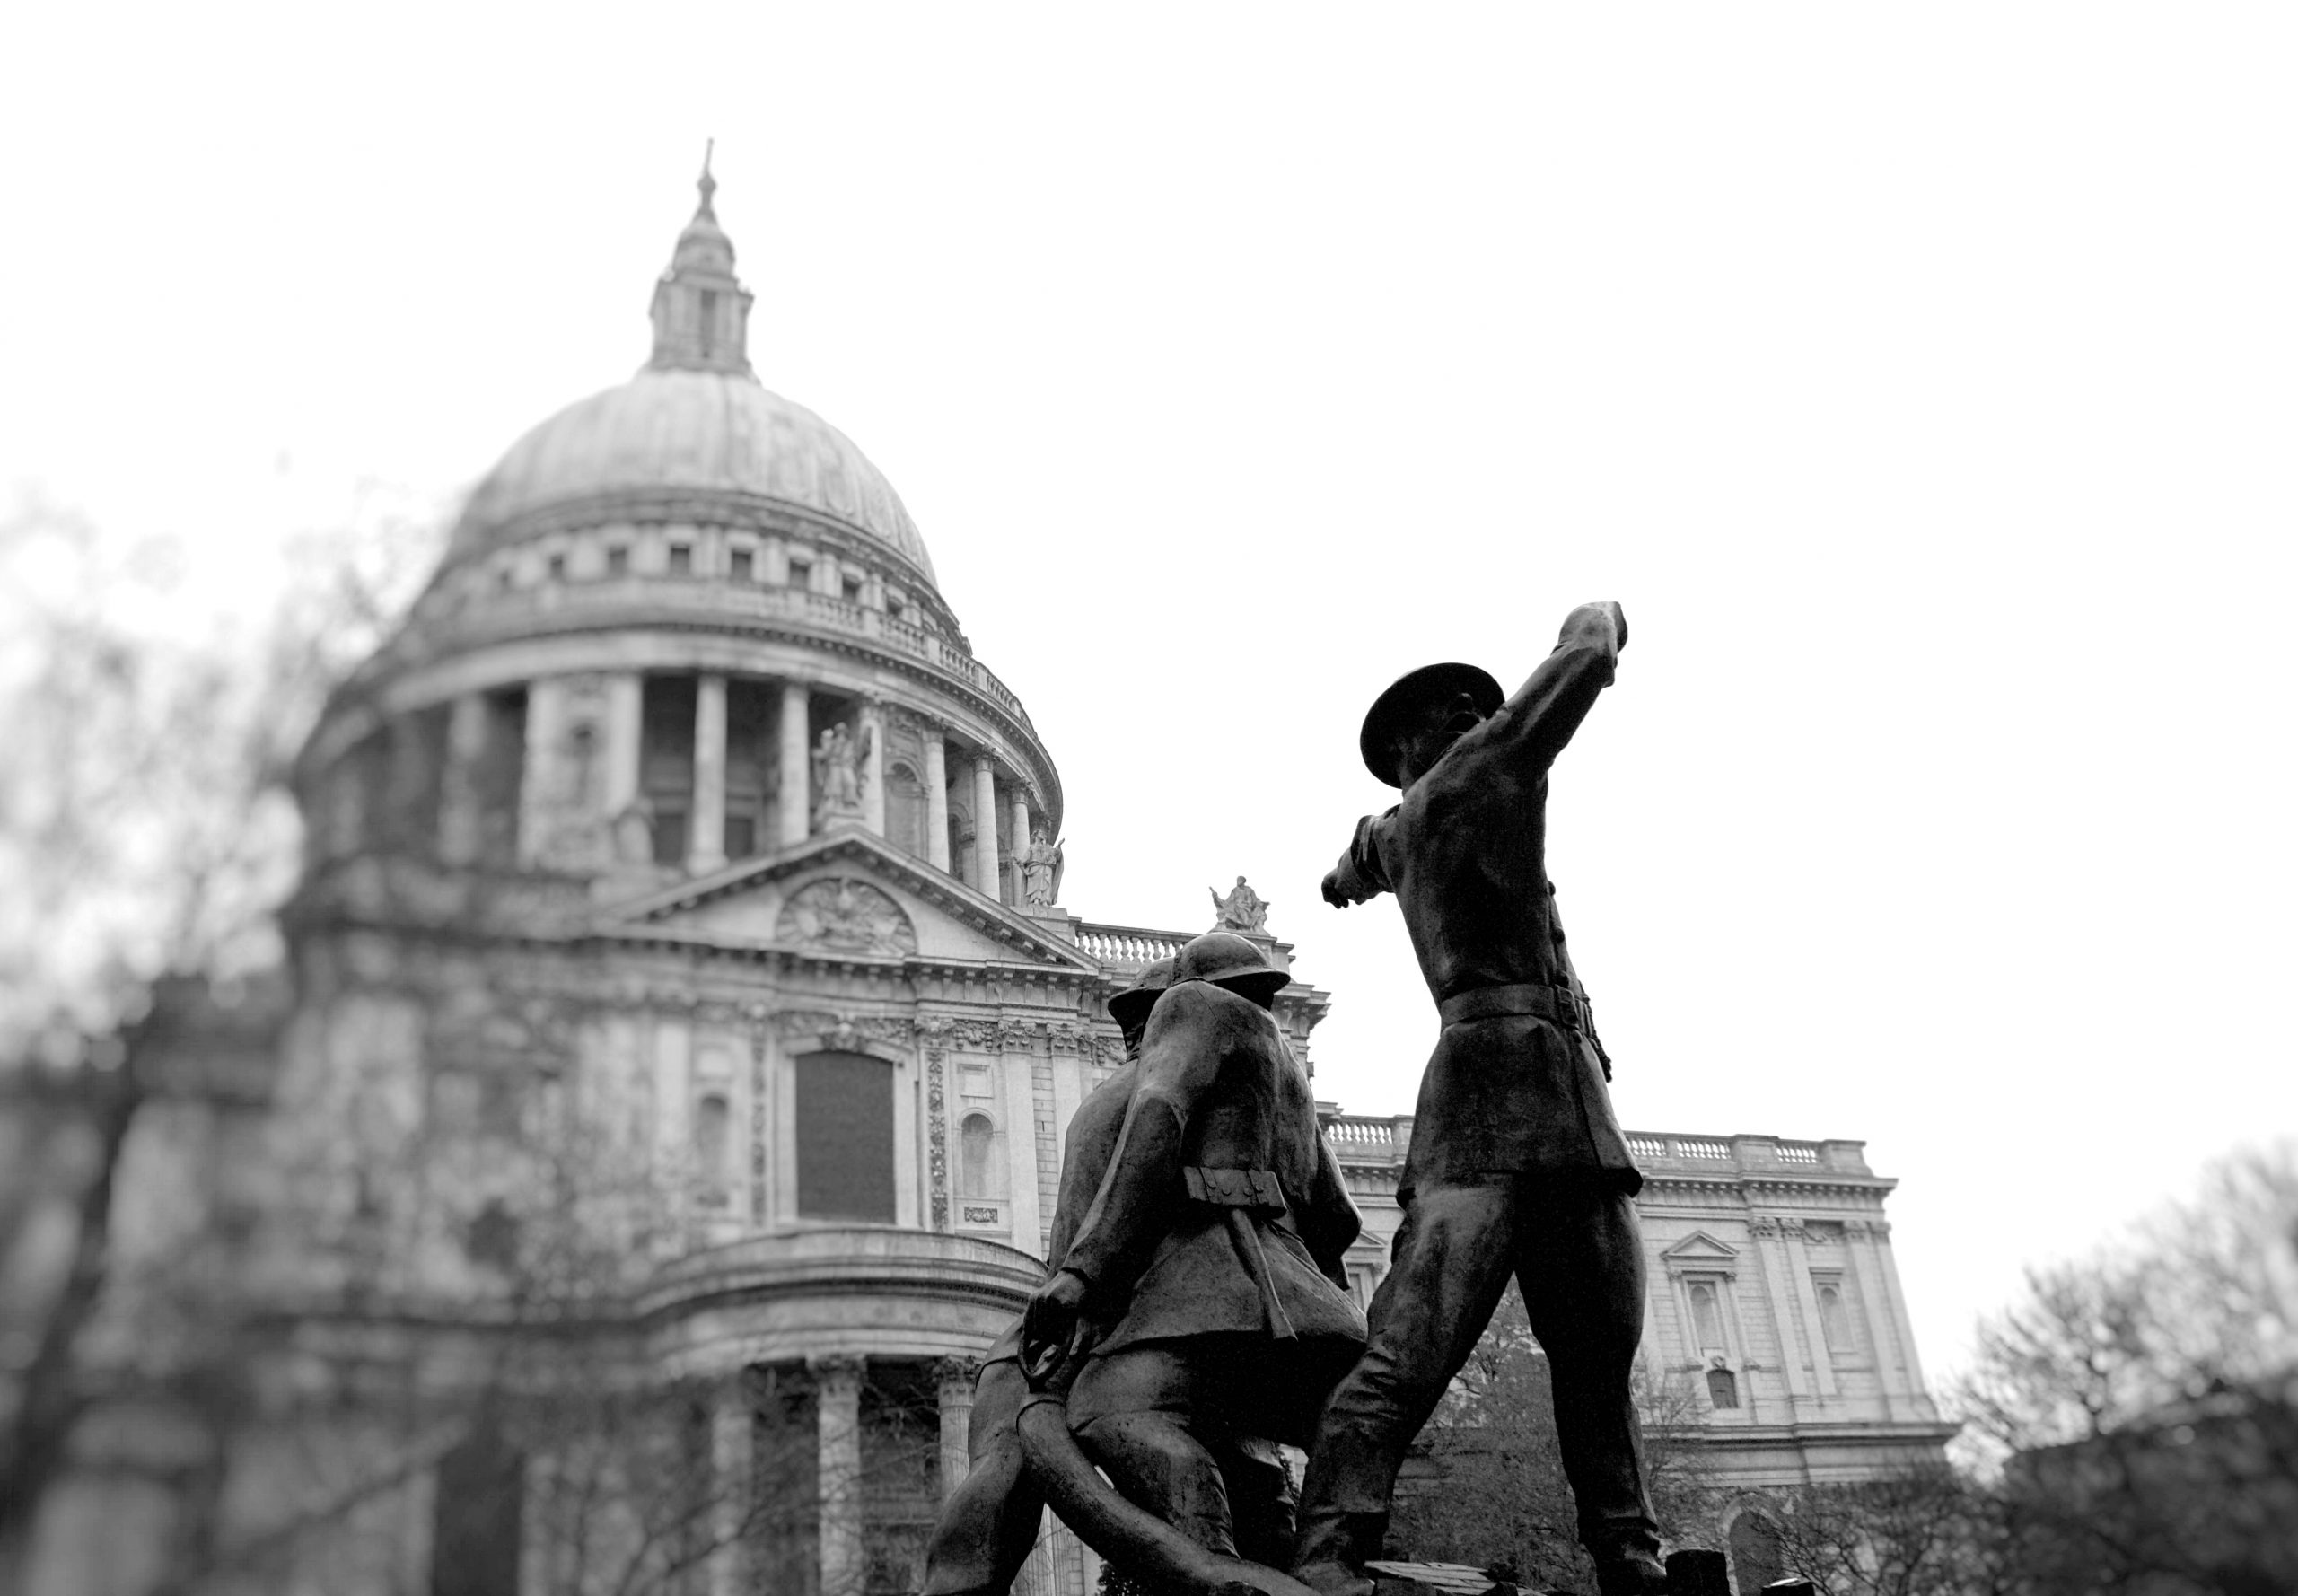 The National Firefighters' Memorial, looking towards St Paul's